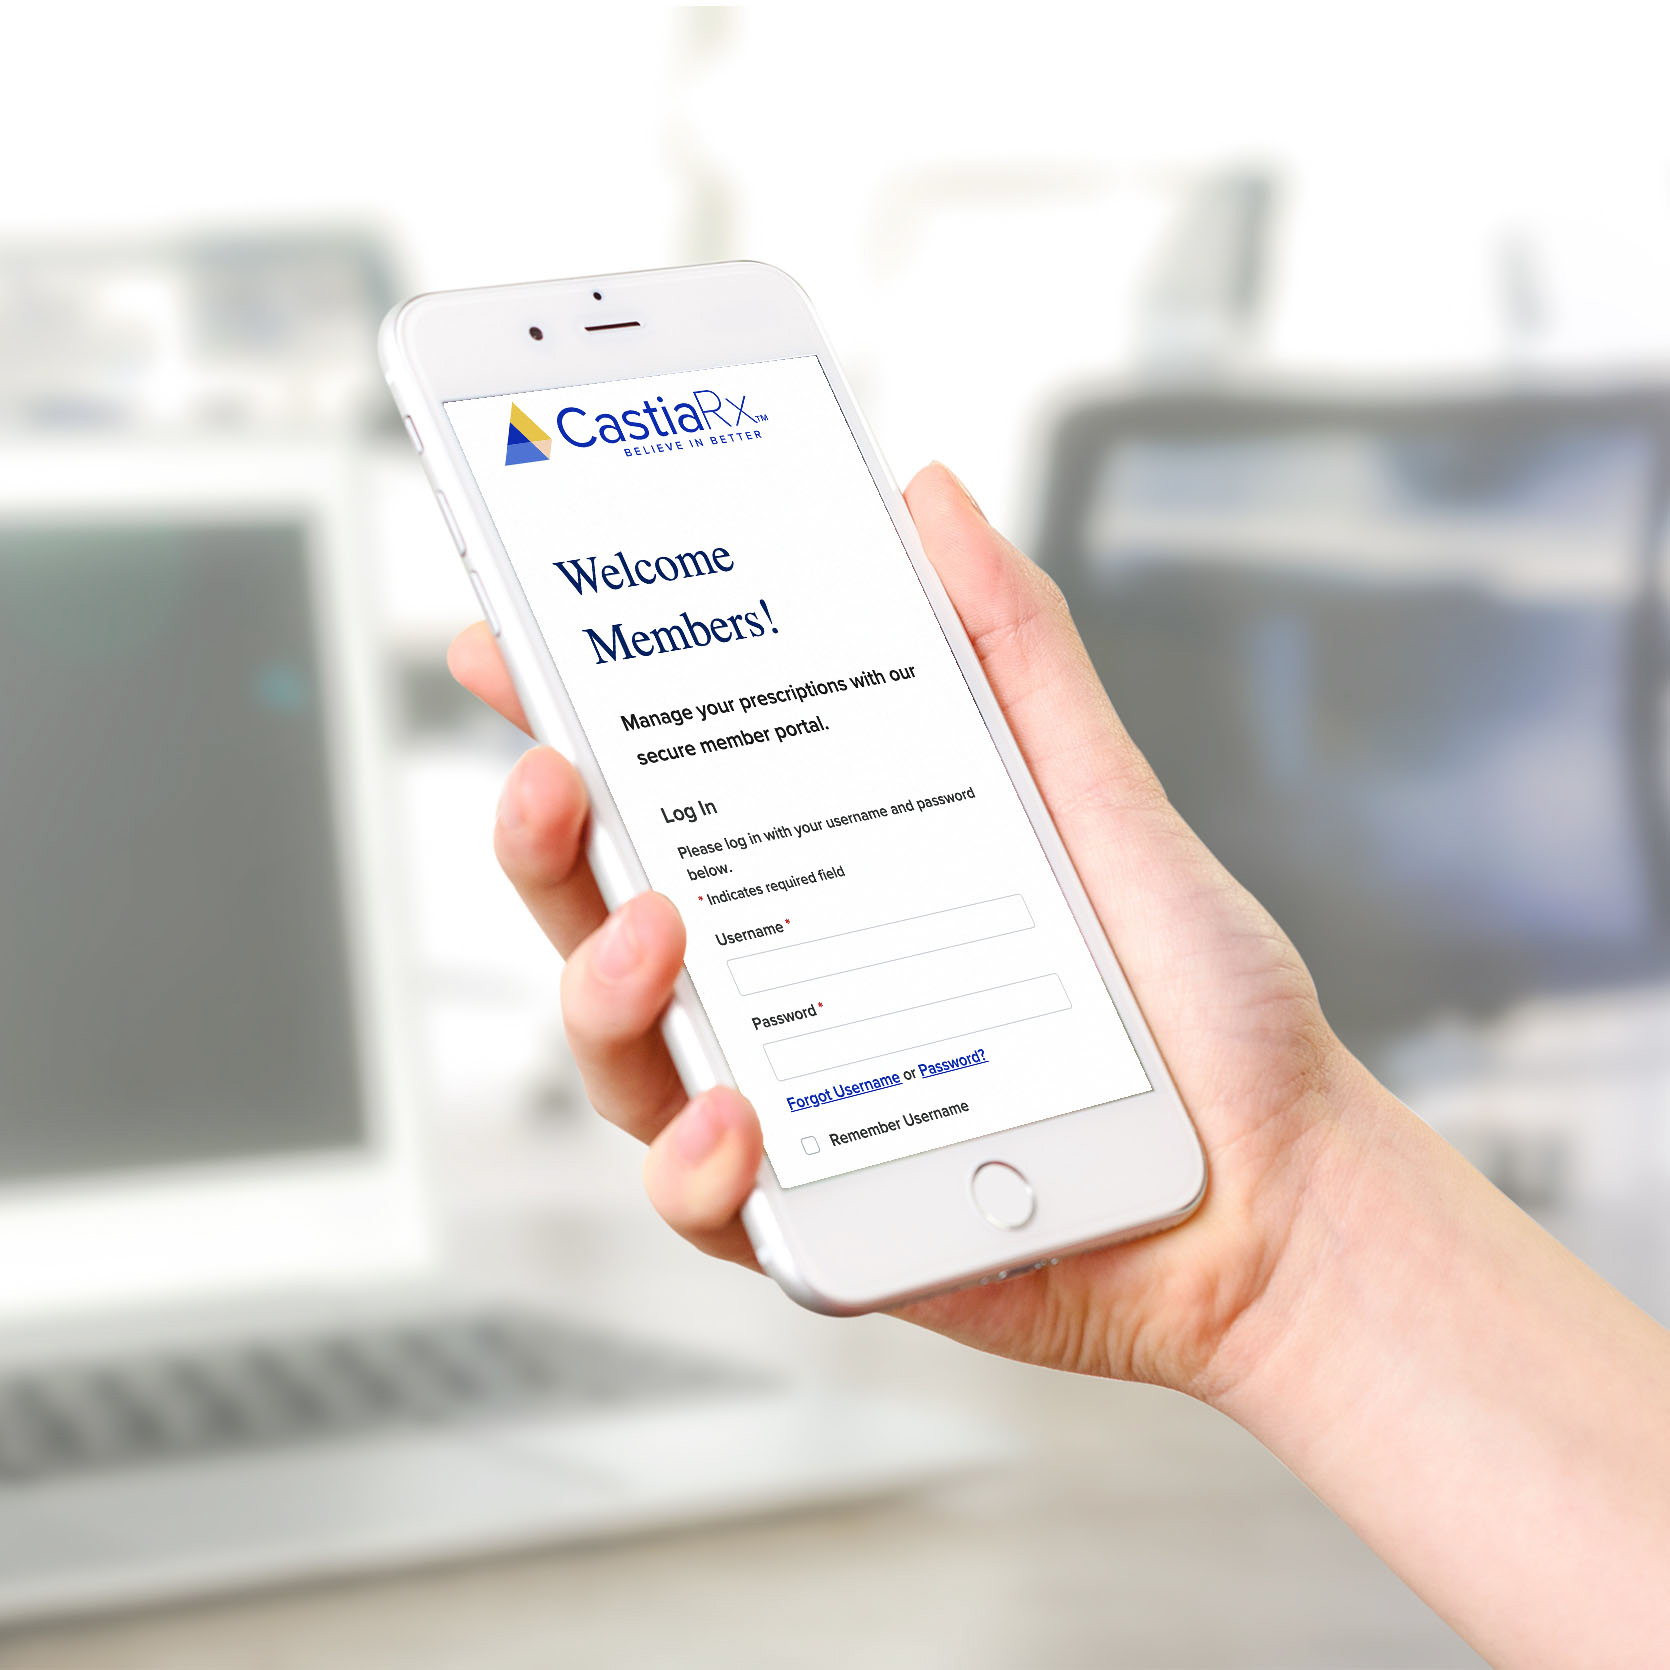 Pharmacy Benefits Manager Smartphone App